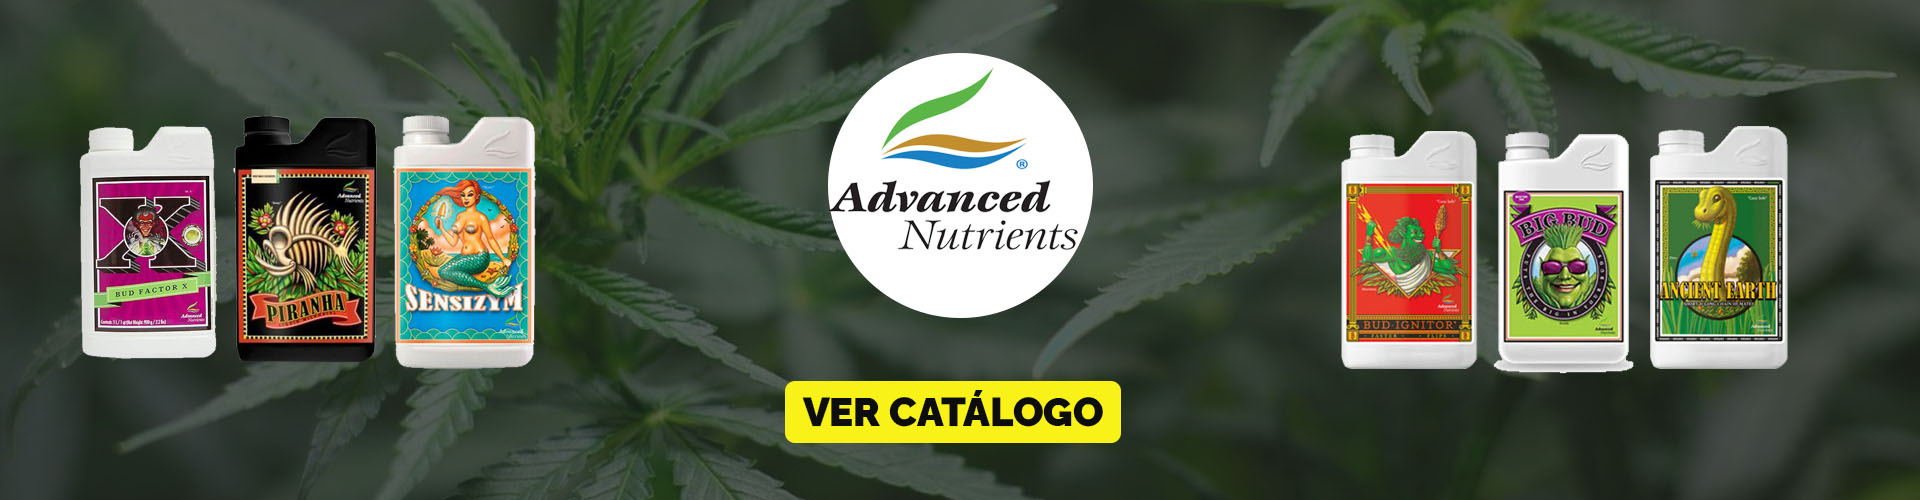 banner advanced nutrients